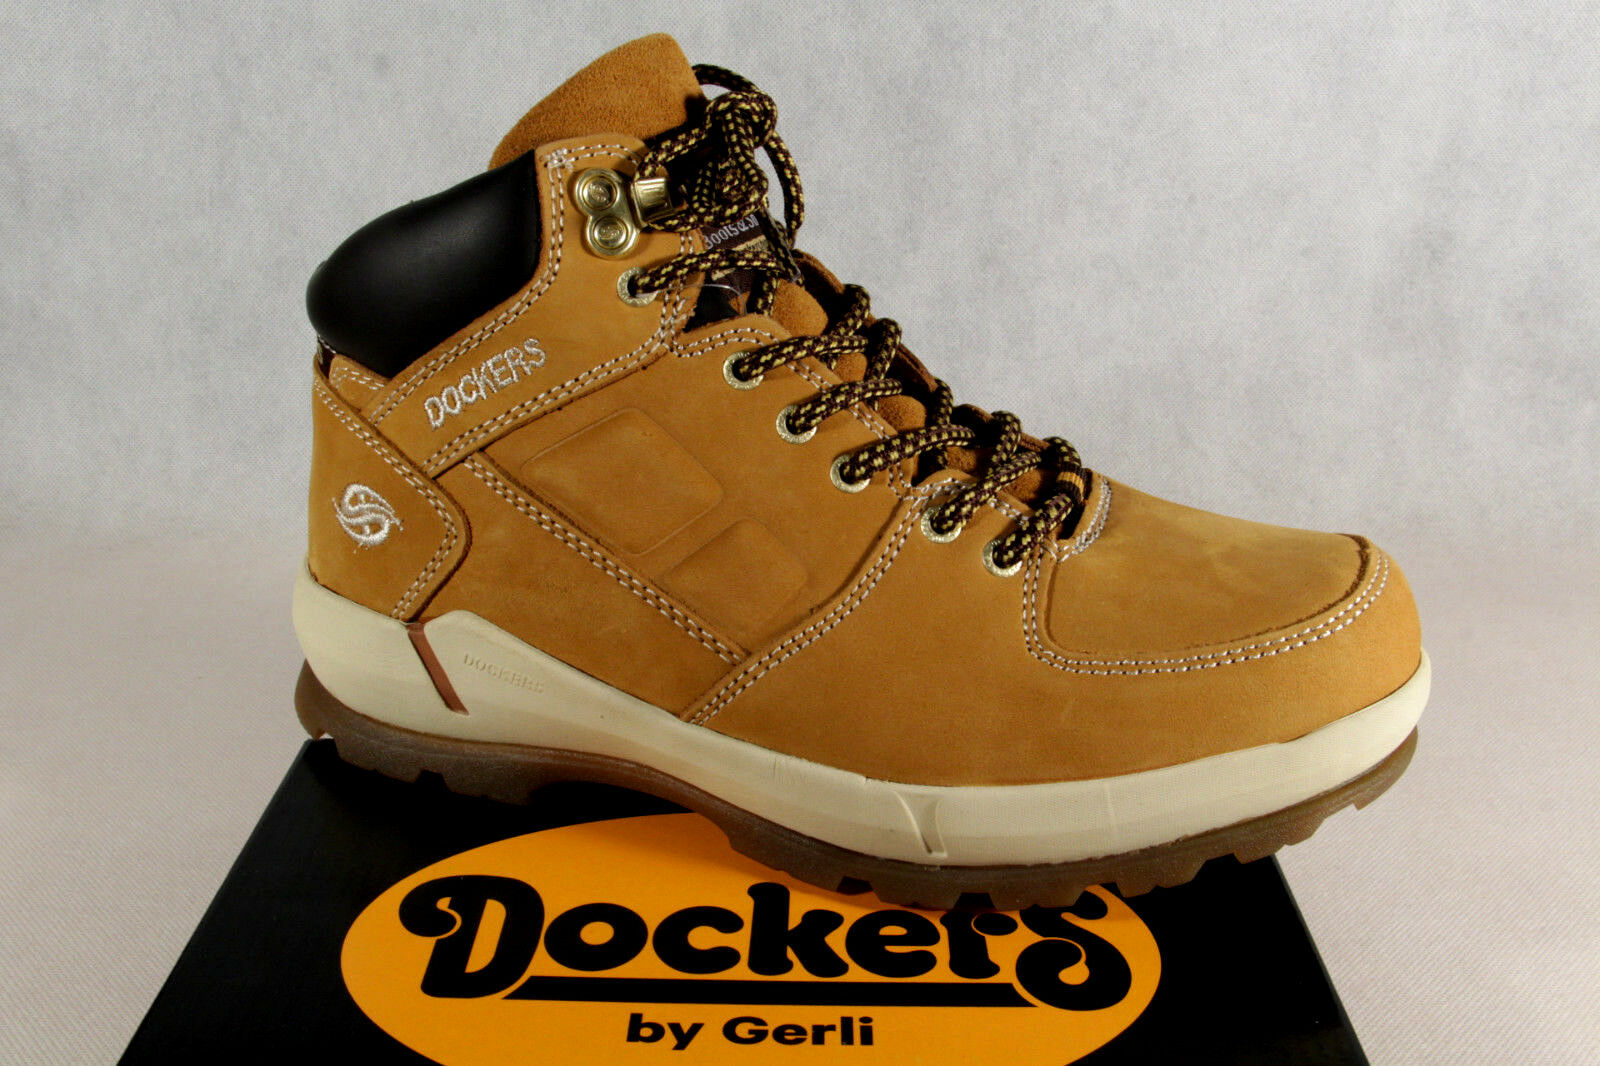 Dockers Boots Lace up Boots Boots Winter Boots Yellow Real Leather 39or003 New